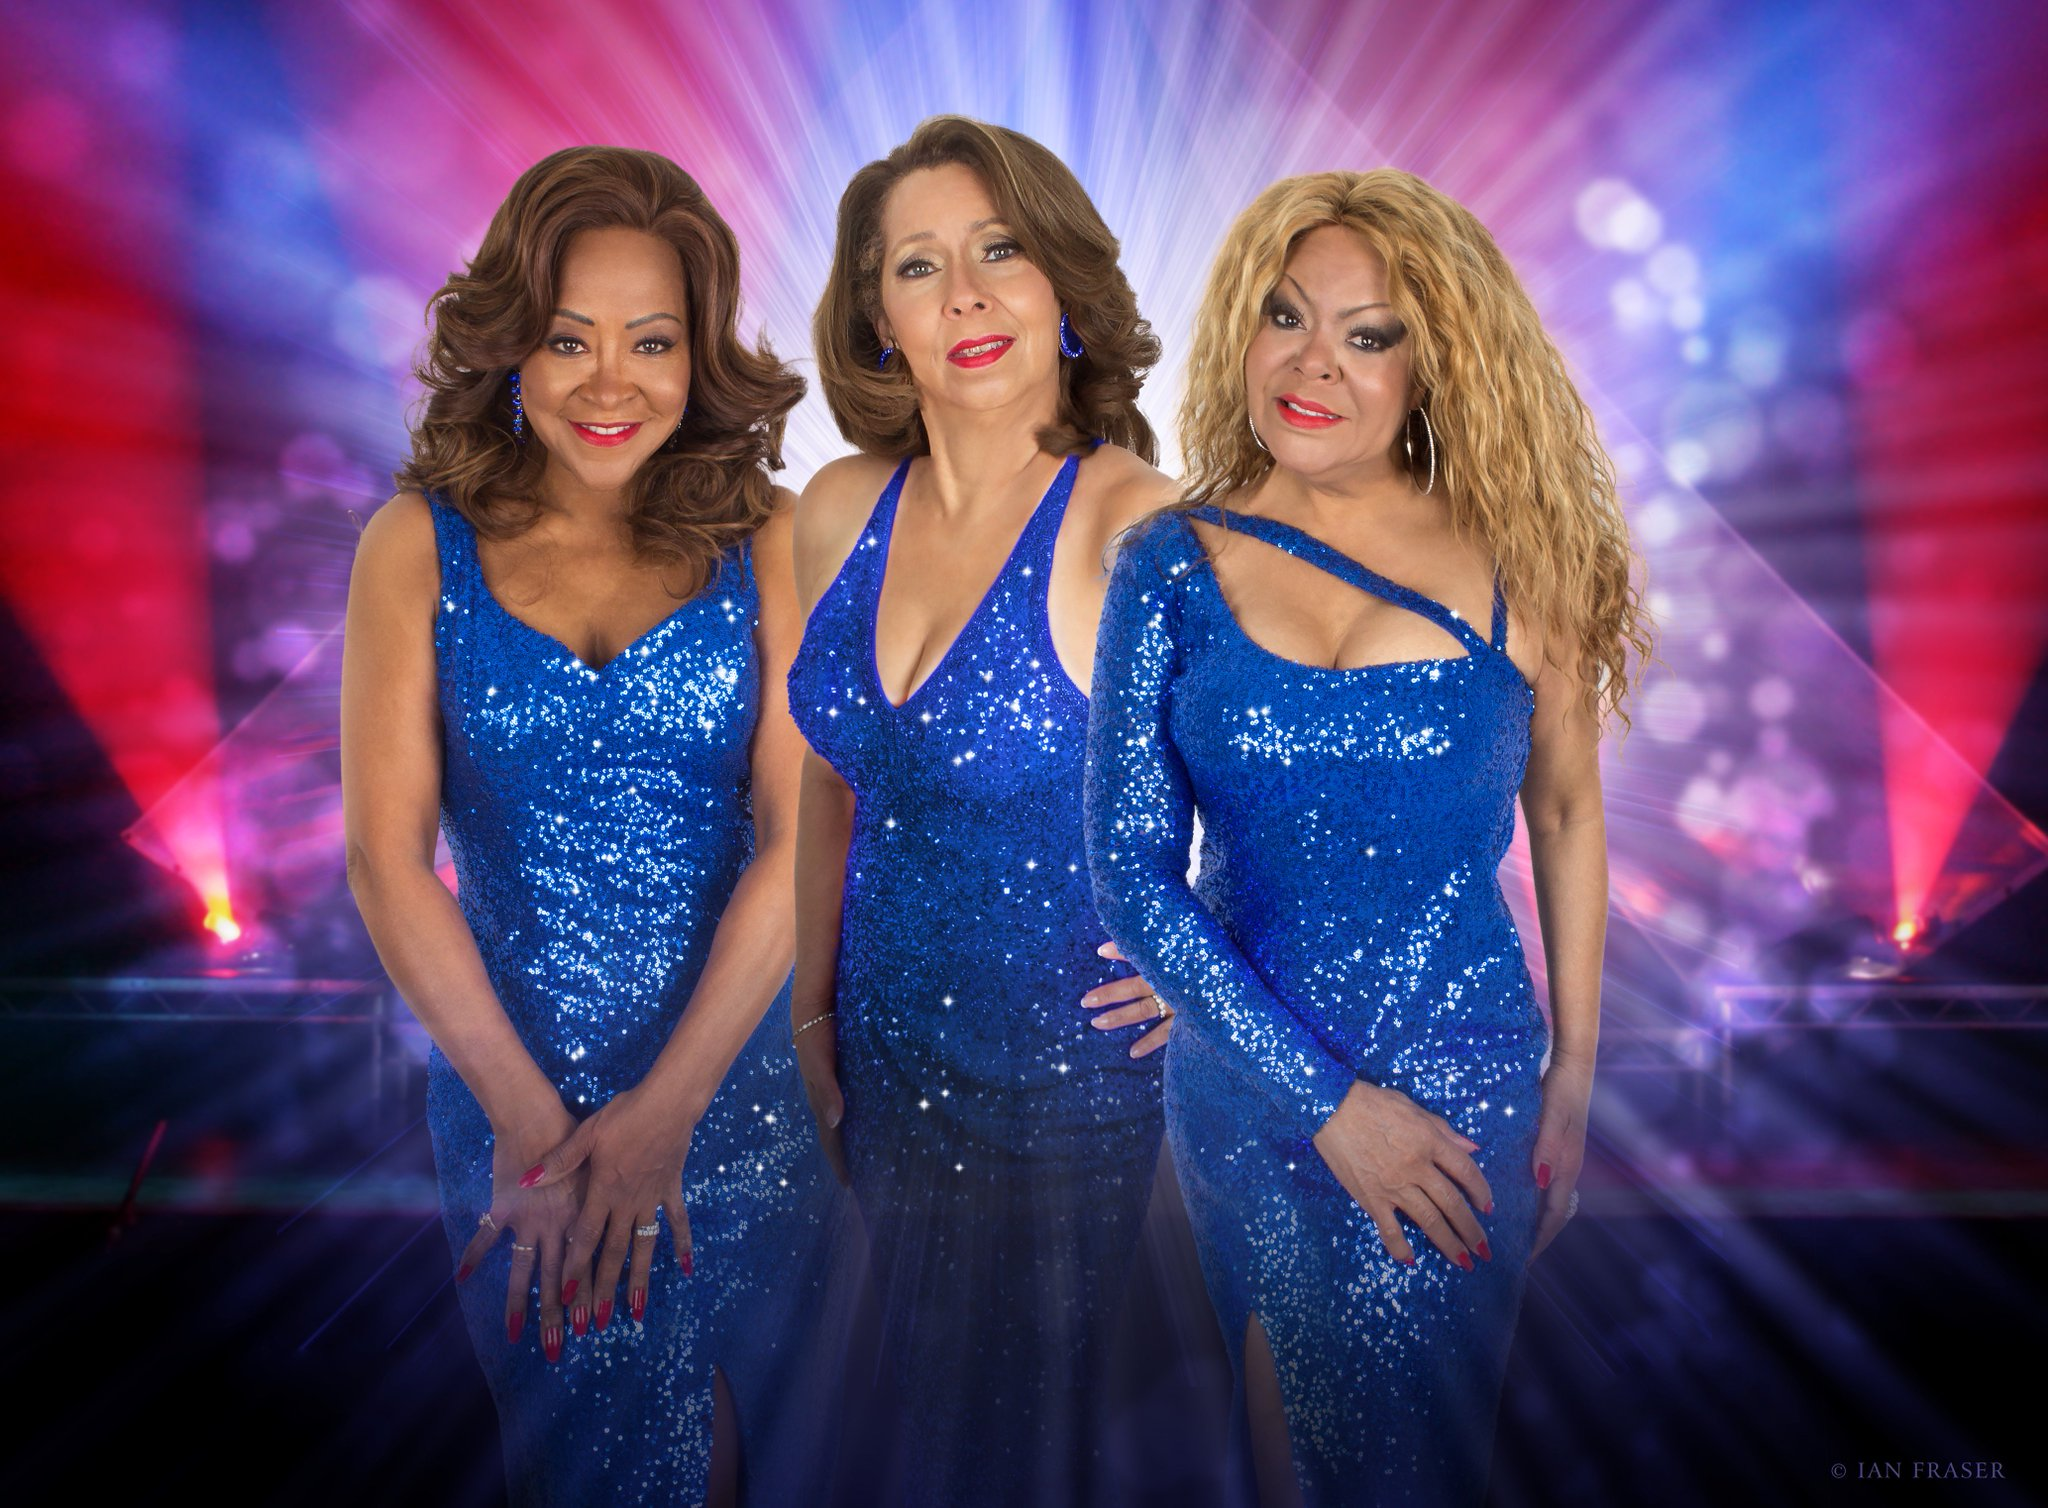 Disco divas @TThreeDegrees join us later in #September for a night of #FunkyFun in #Brum! Visit website for info. https://t.co/7cc5ax1DeD